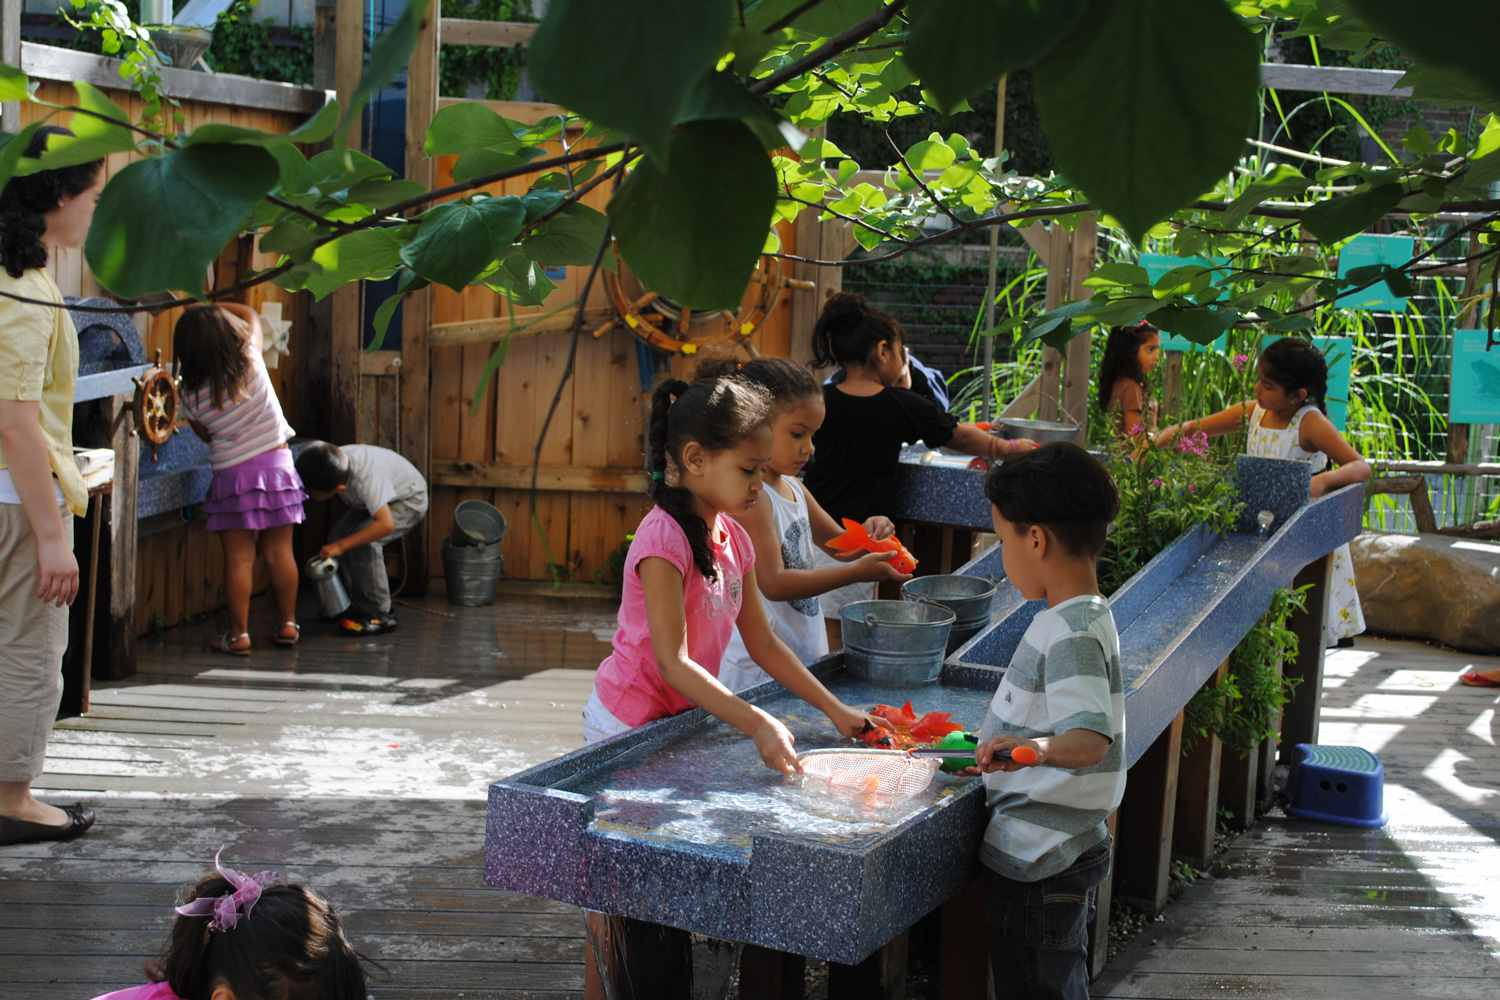 10 Top Children's Attractions on Long Island, New York